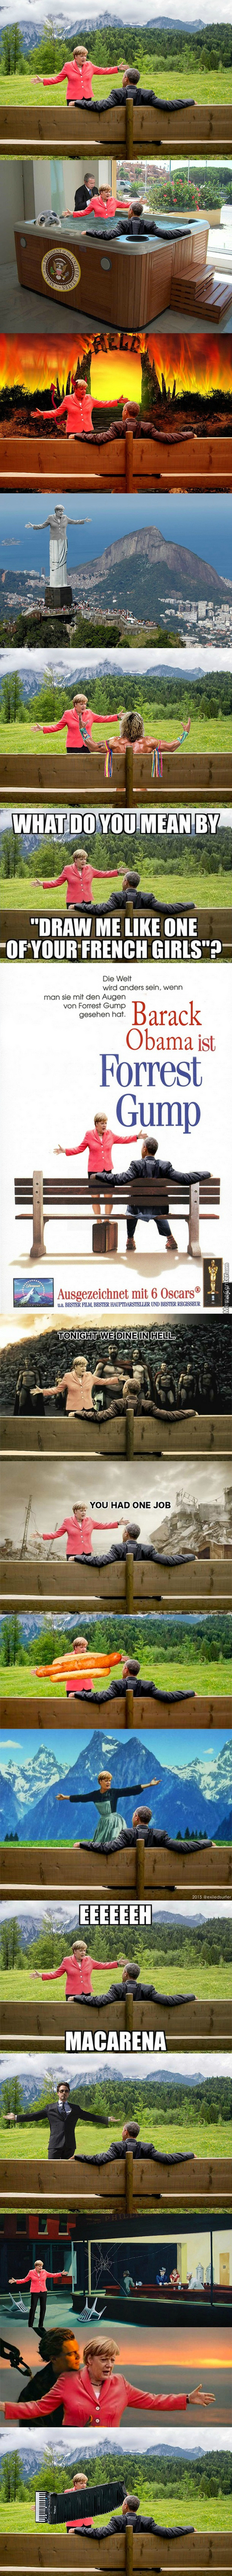 Merkel & Obama (Not My Original Work)